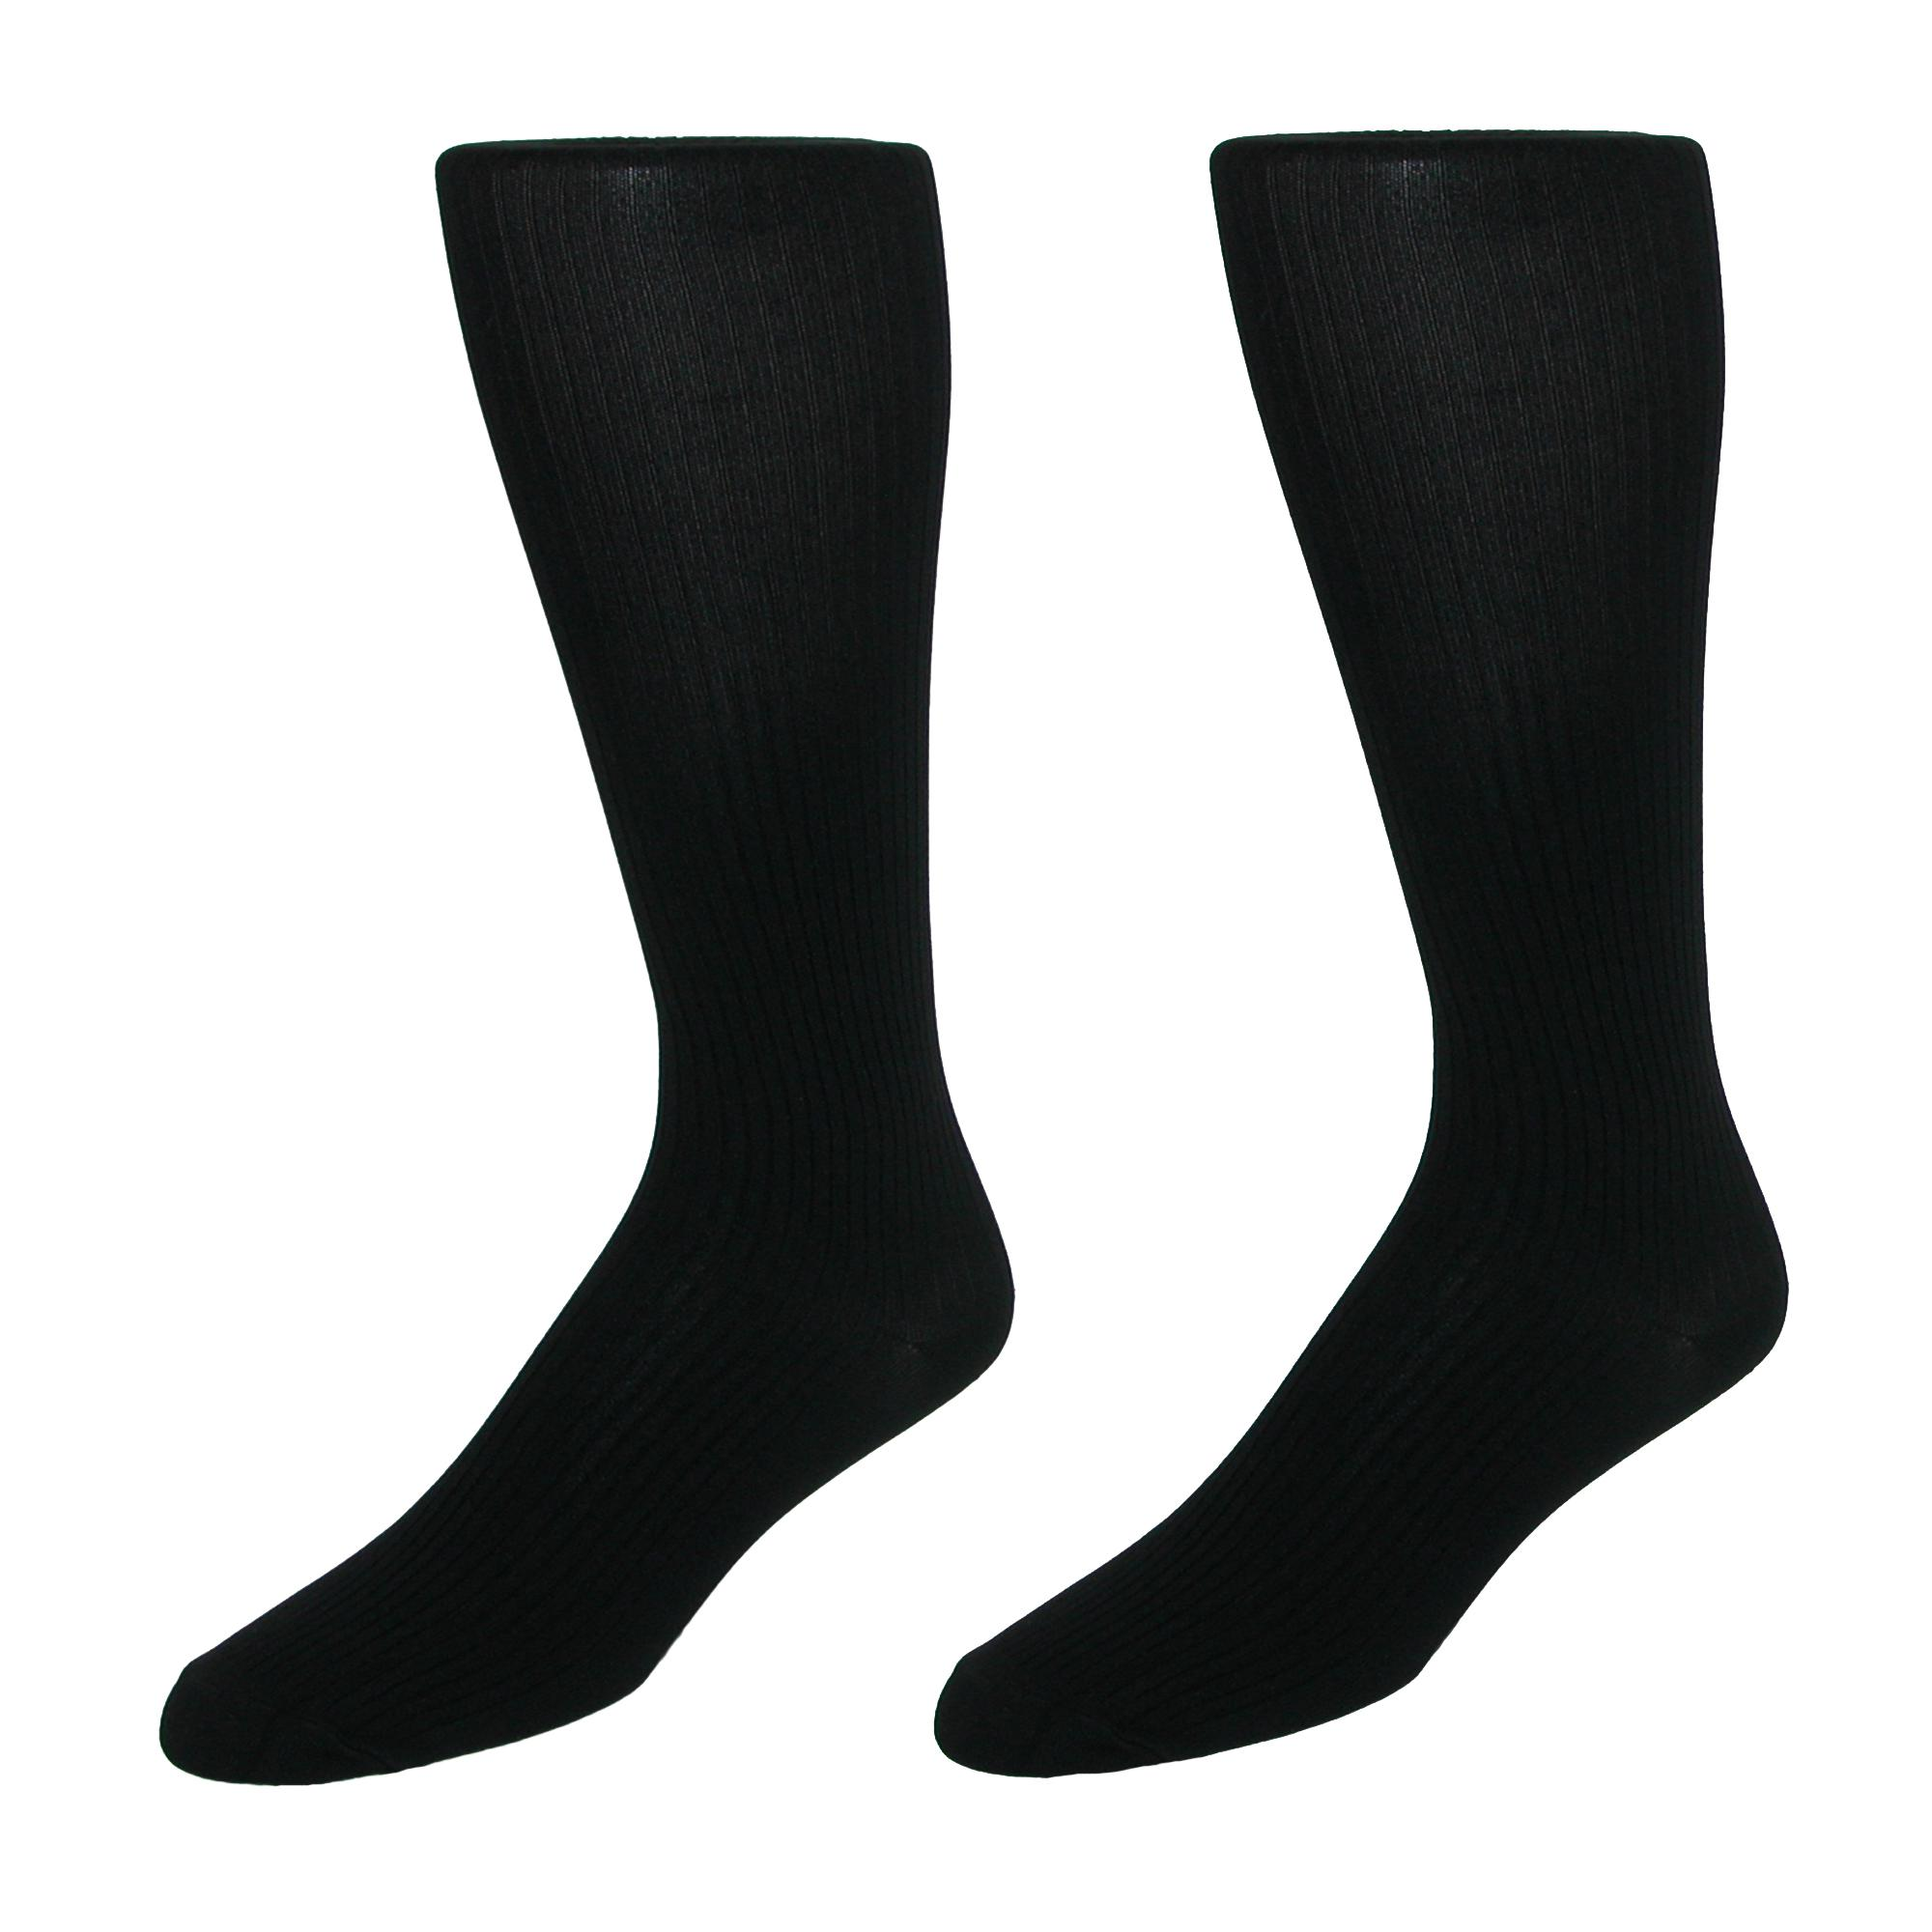 New-Jefferies-Socks-Men-039-s-Microfiber-Over-the-Calf-Dress-Socks-2-Pair-Pack miniature 3